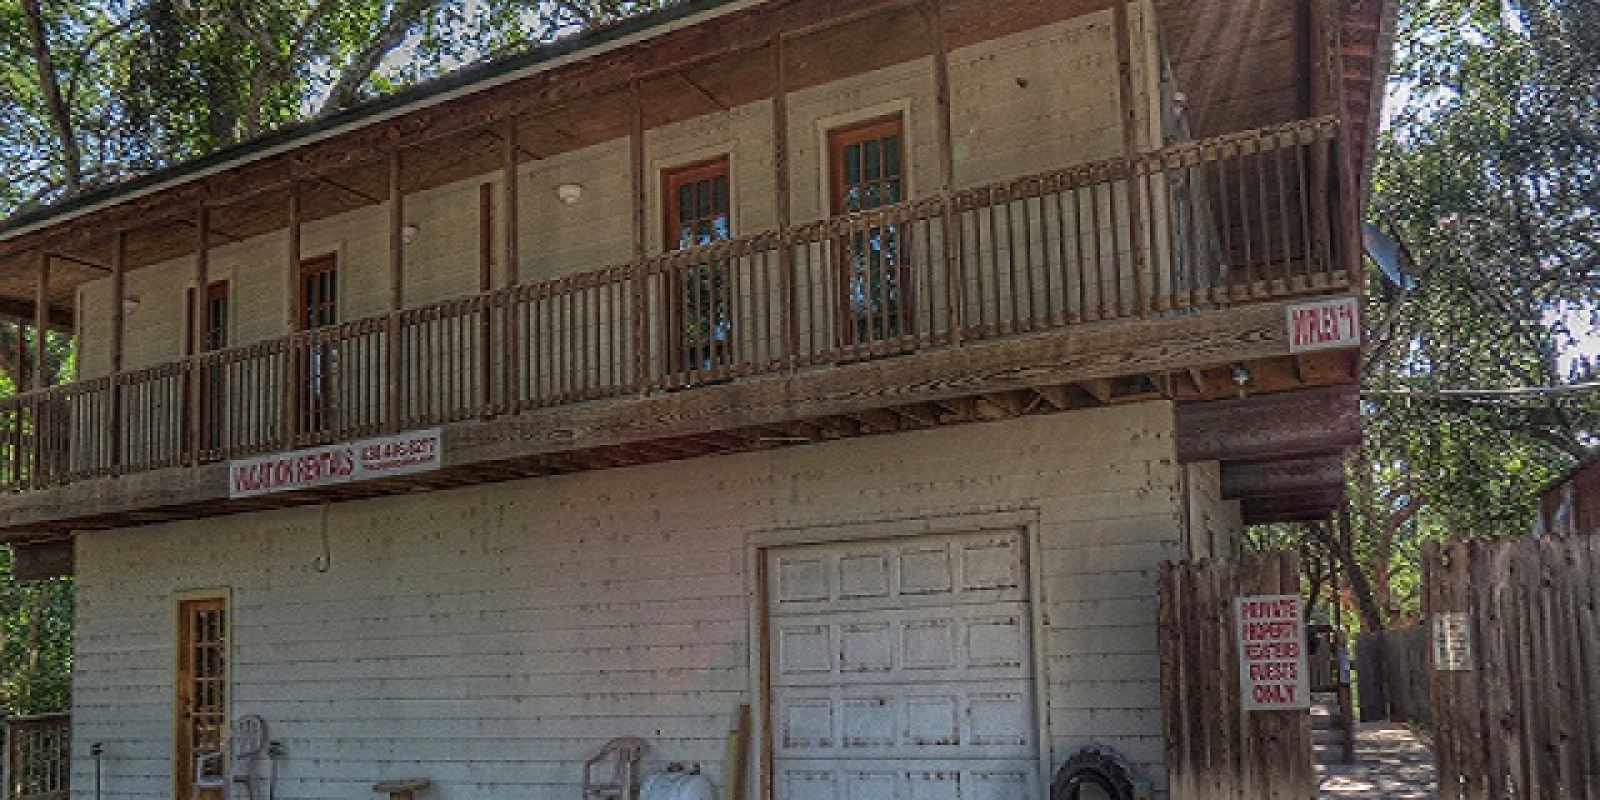 N US Highway 83, Concan, 78838, 5 Bedrooms Bedrooms, ,4 BathroomsBathrooms,Water Access,Sold,N US Highway 83,1059